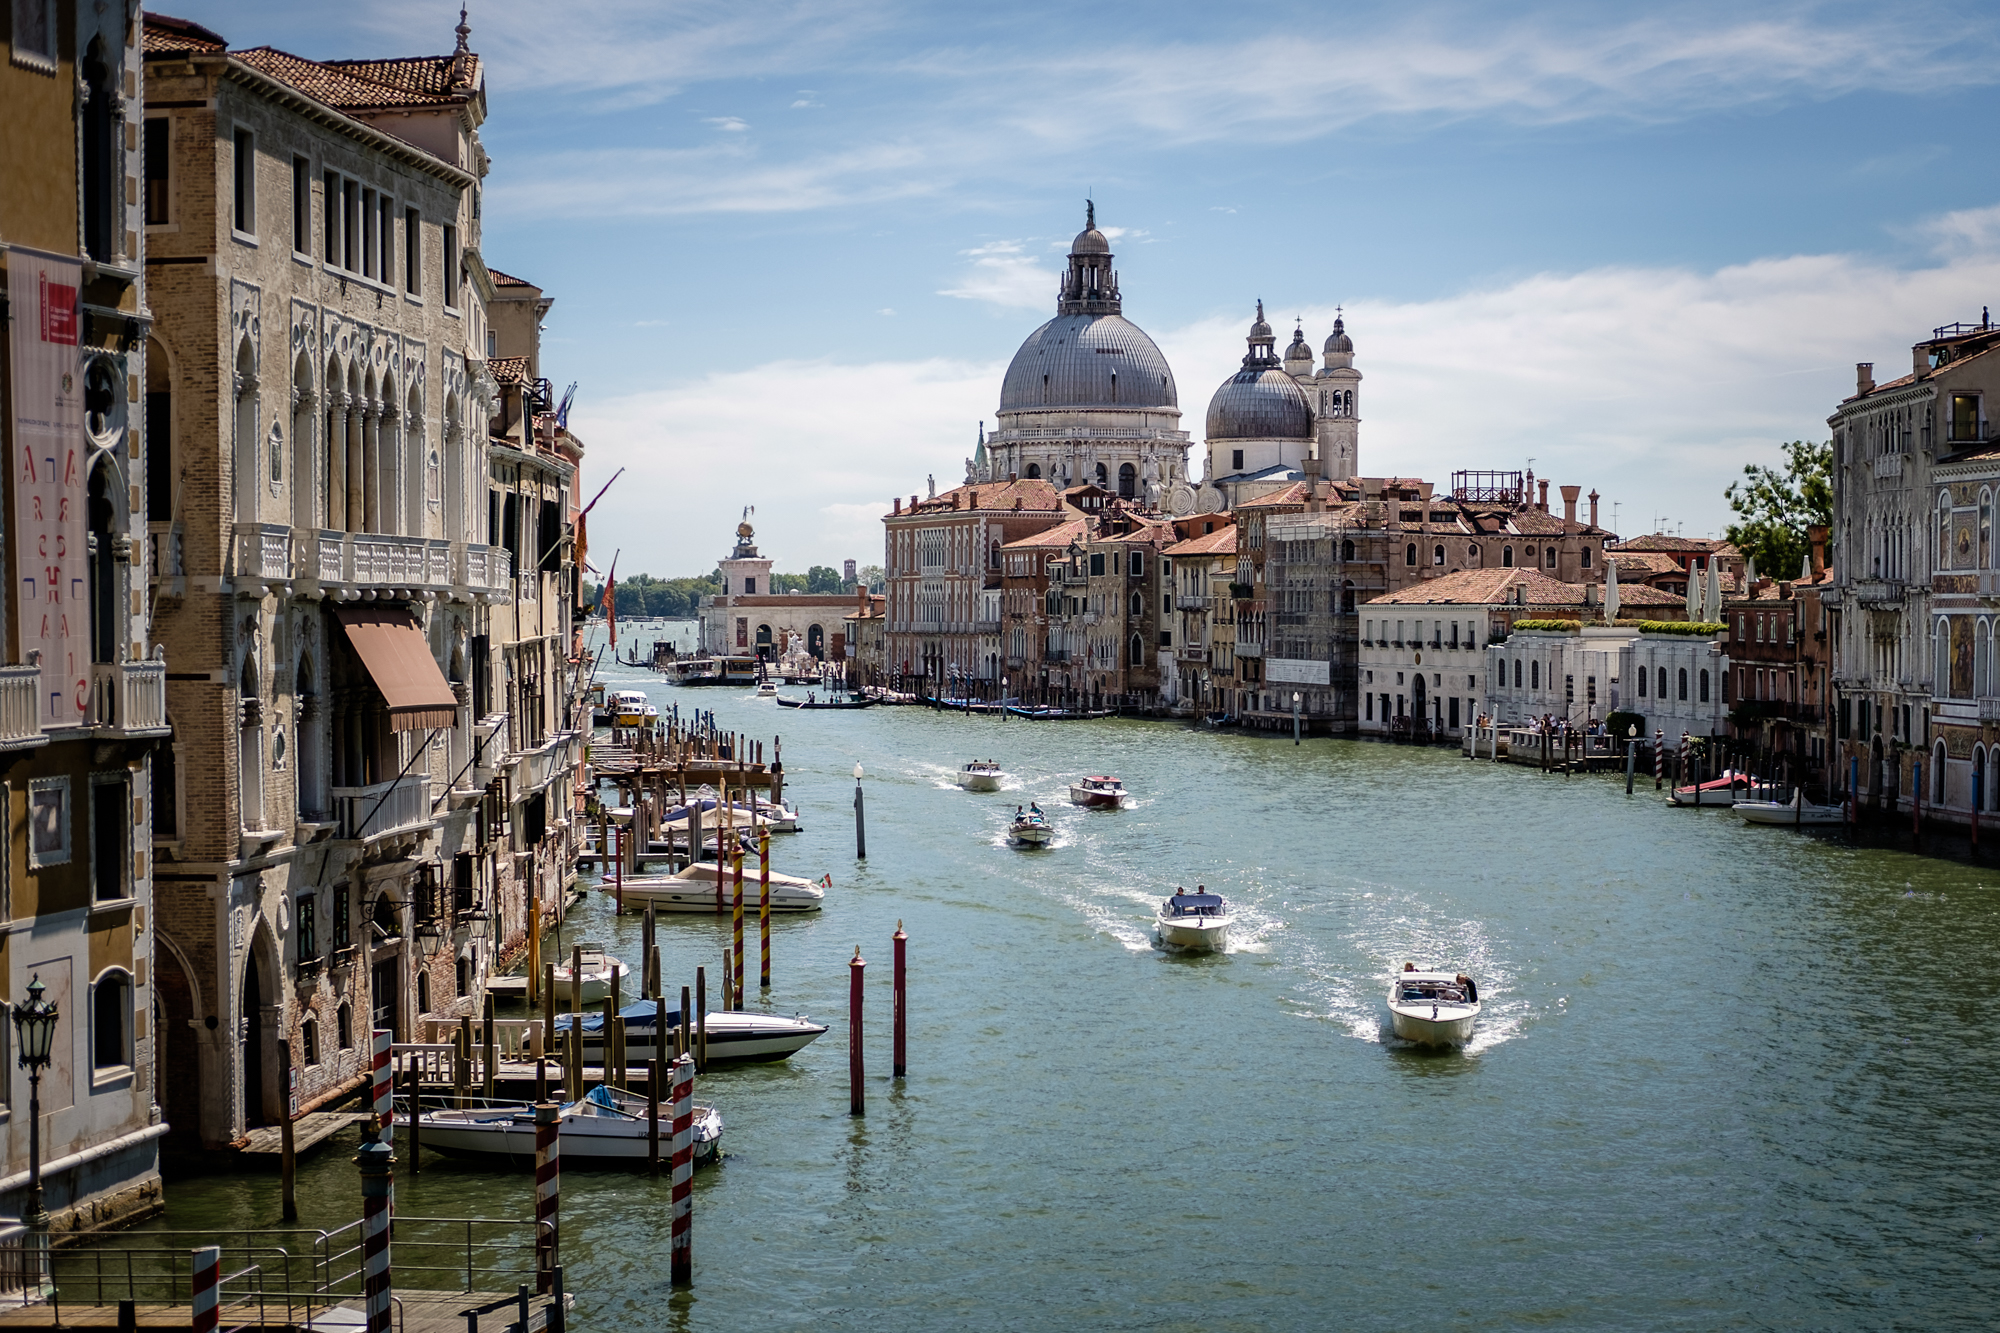 Photo of the Grand Canal taken of the Accademia Bridge by Trevor Sherwin